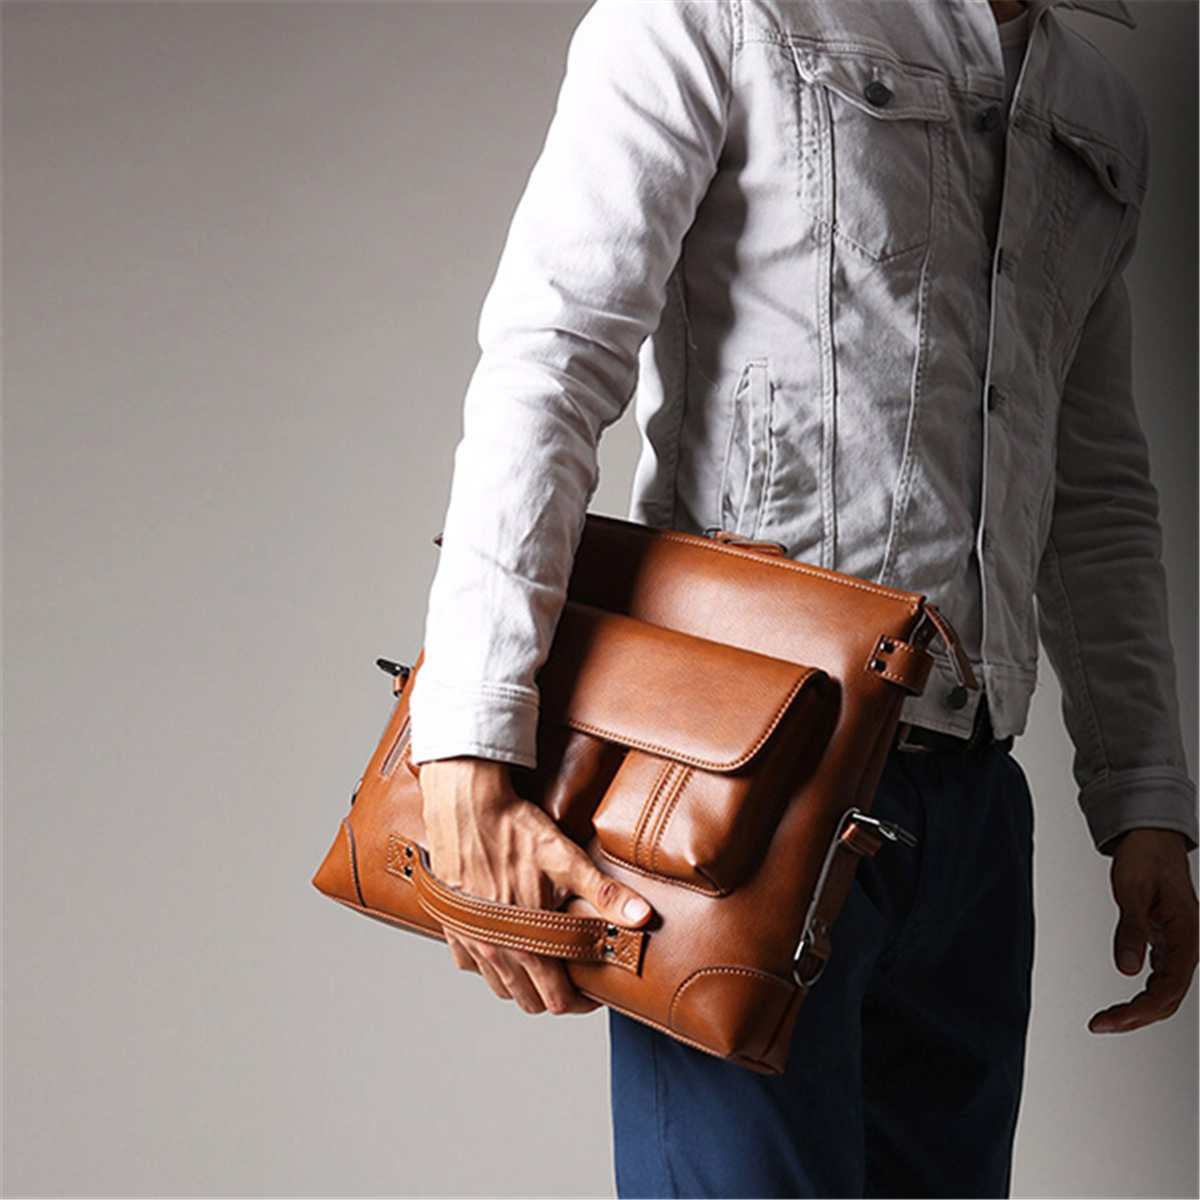 a guy holding a shoulder bag